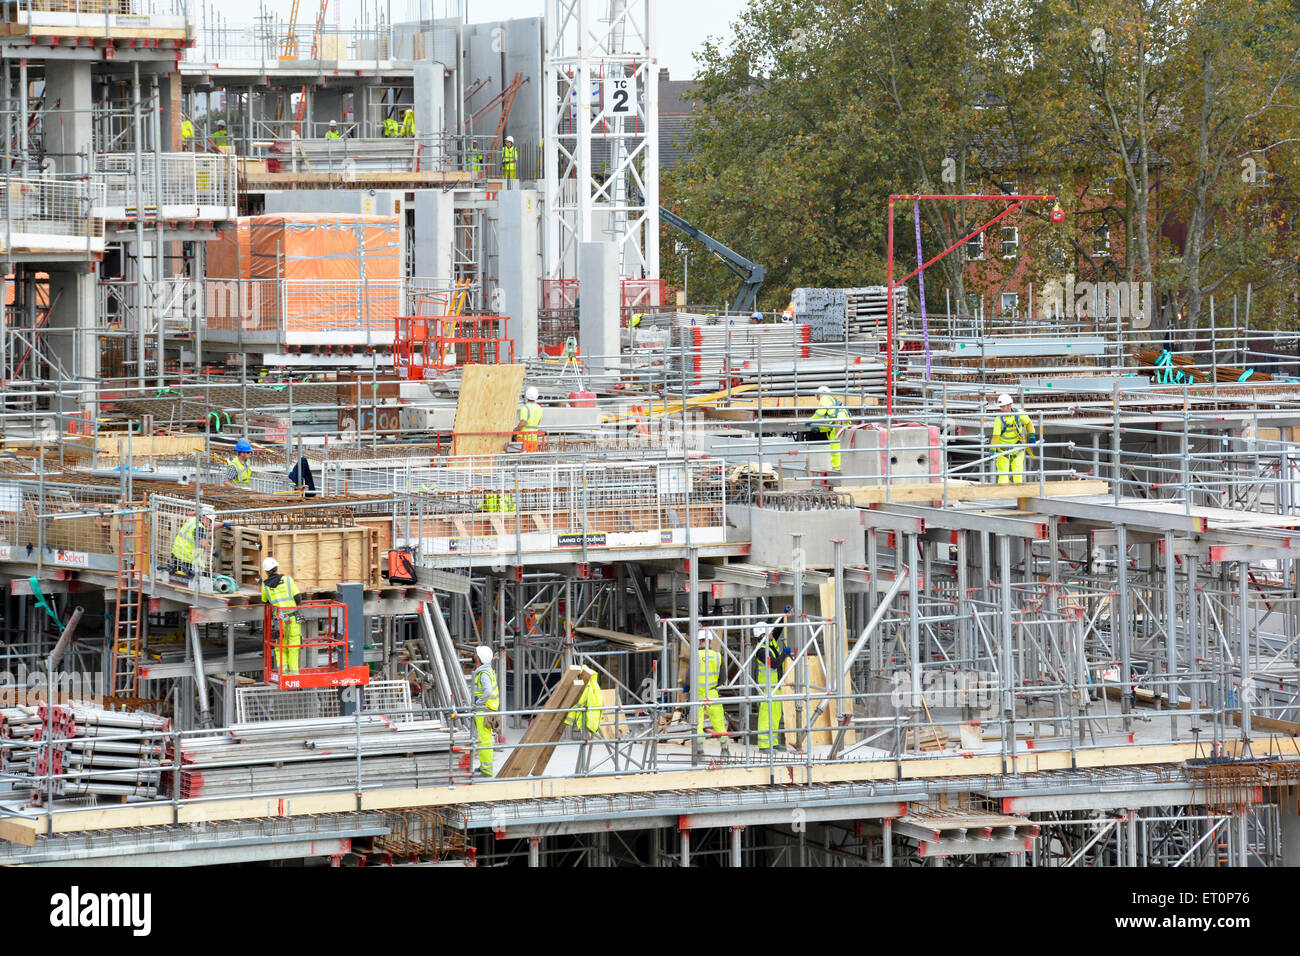 Construction site modular formwork and scaffolding units in use on construction of building superstructure South - Stock Image